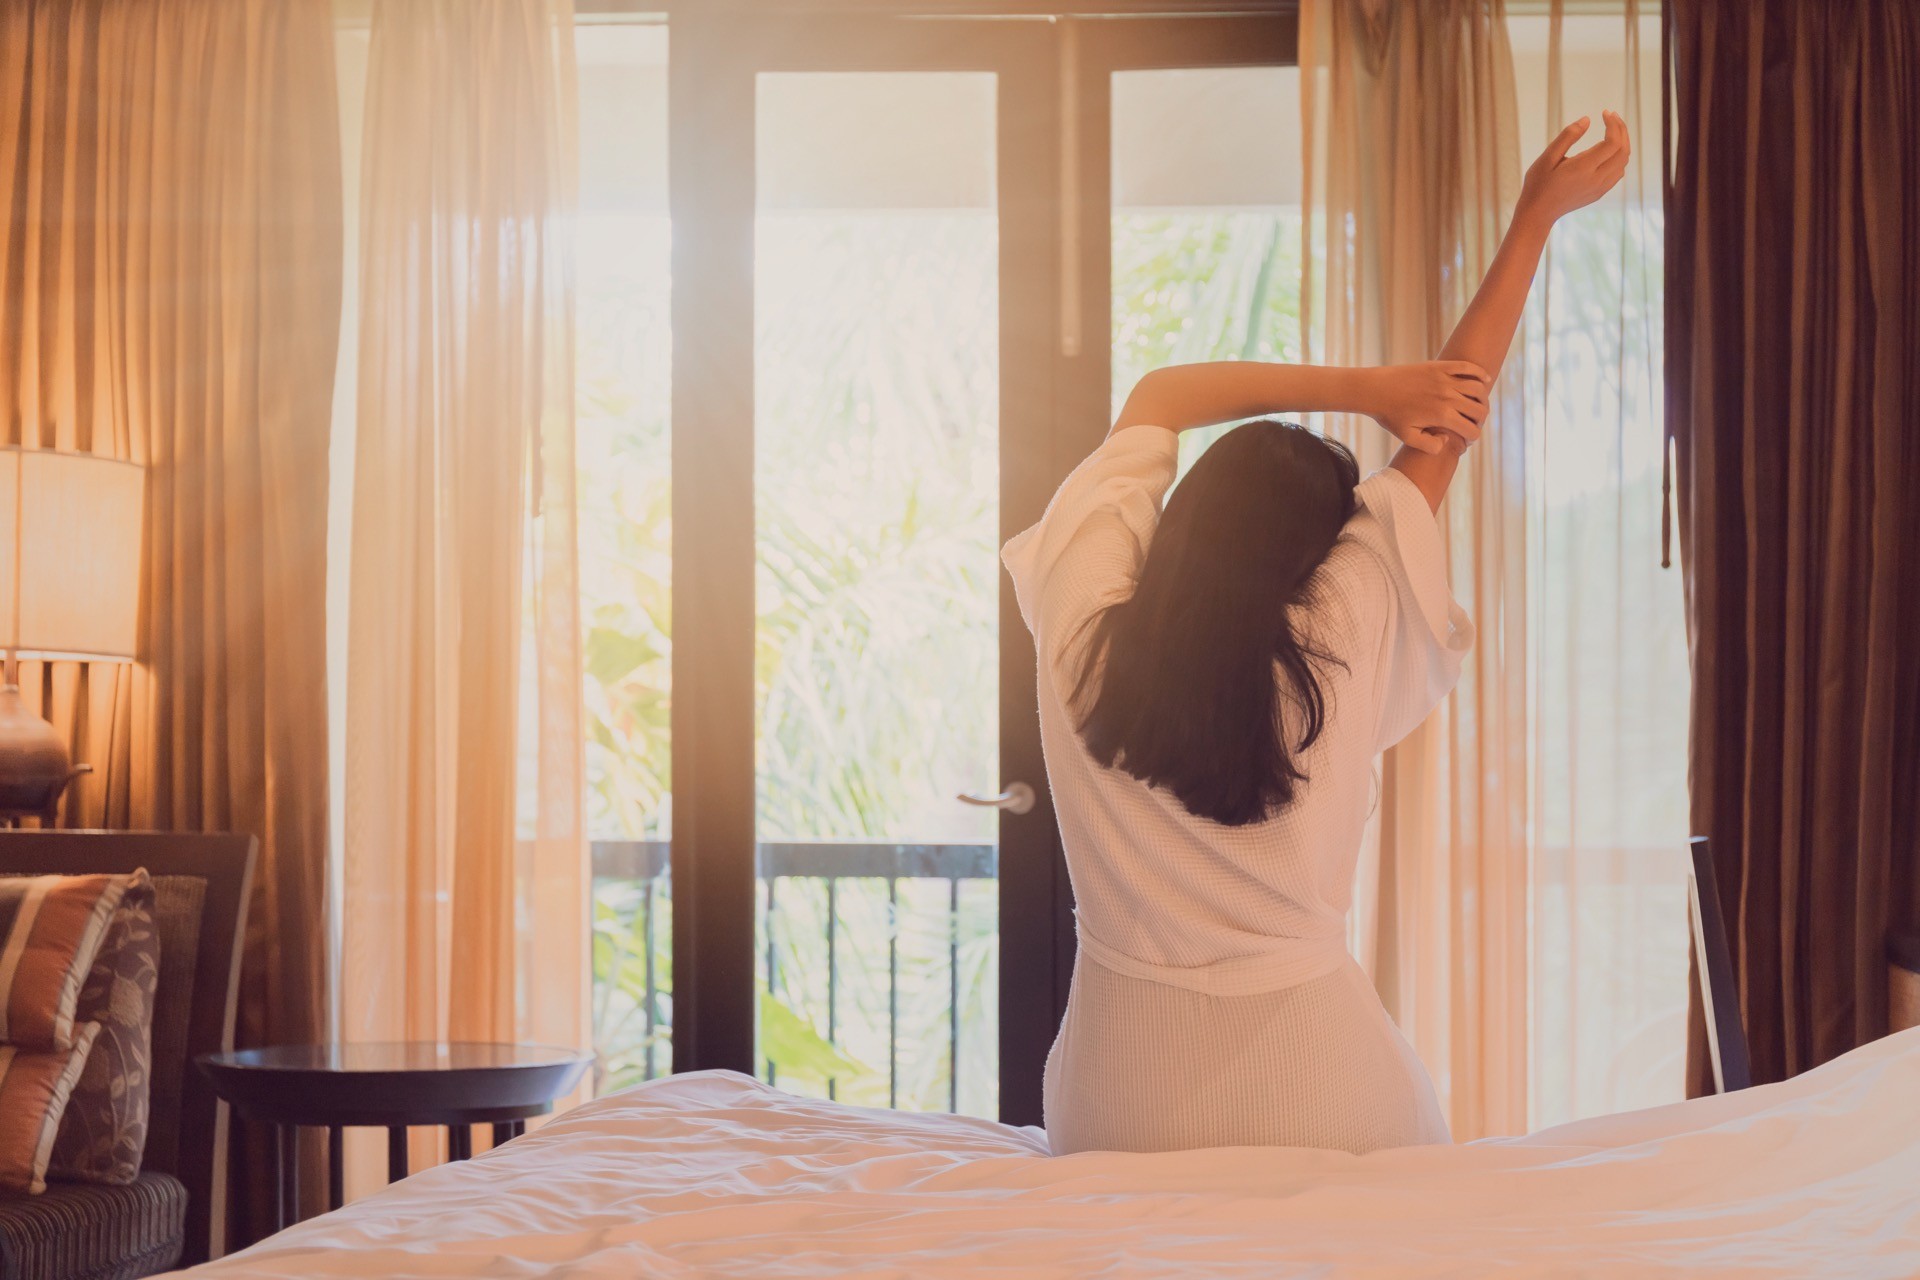 Asian Women Are Staying In A Hotel Room After Wake Up On Morning